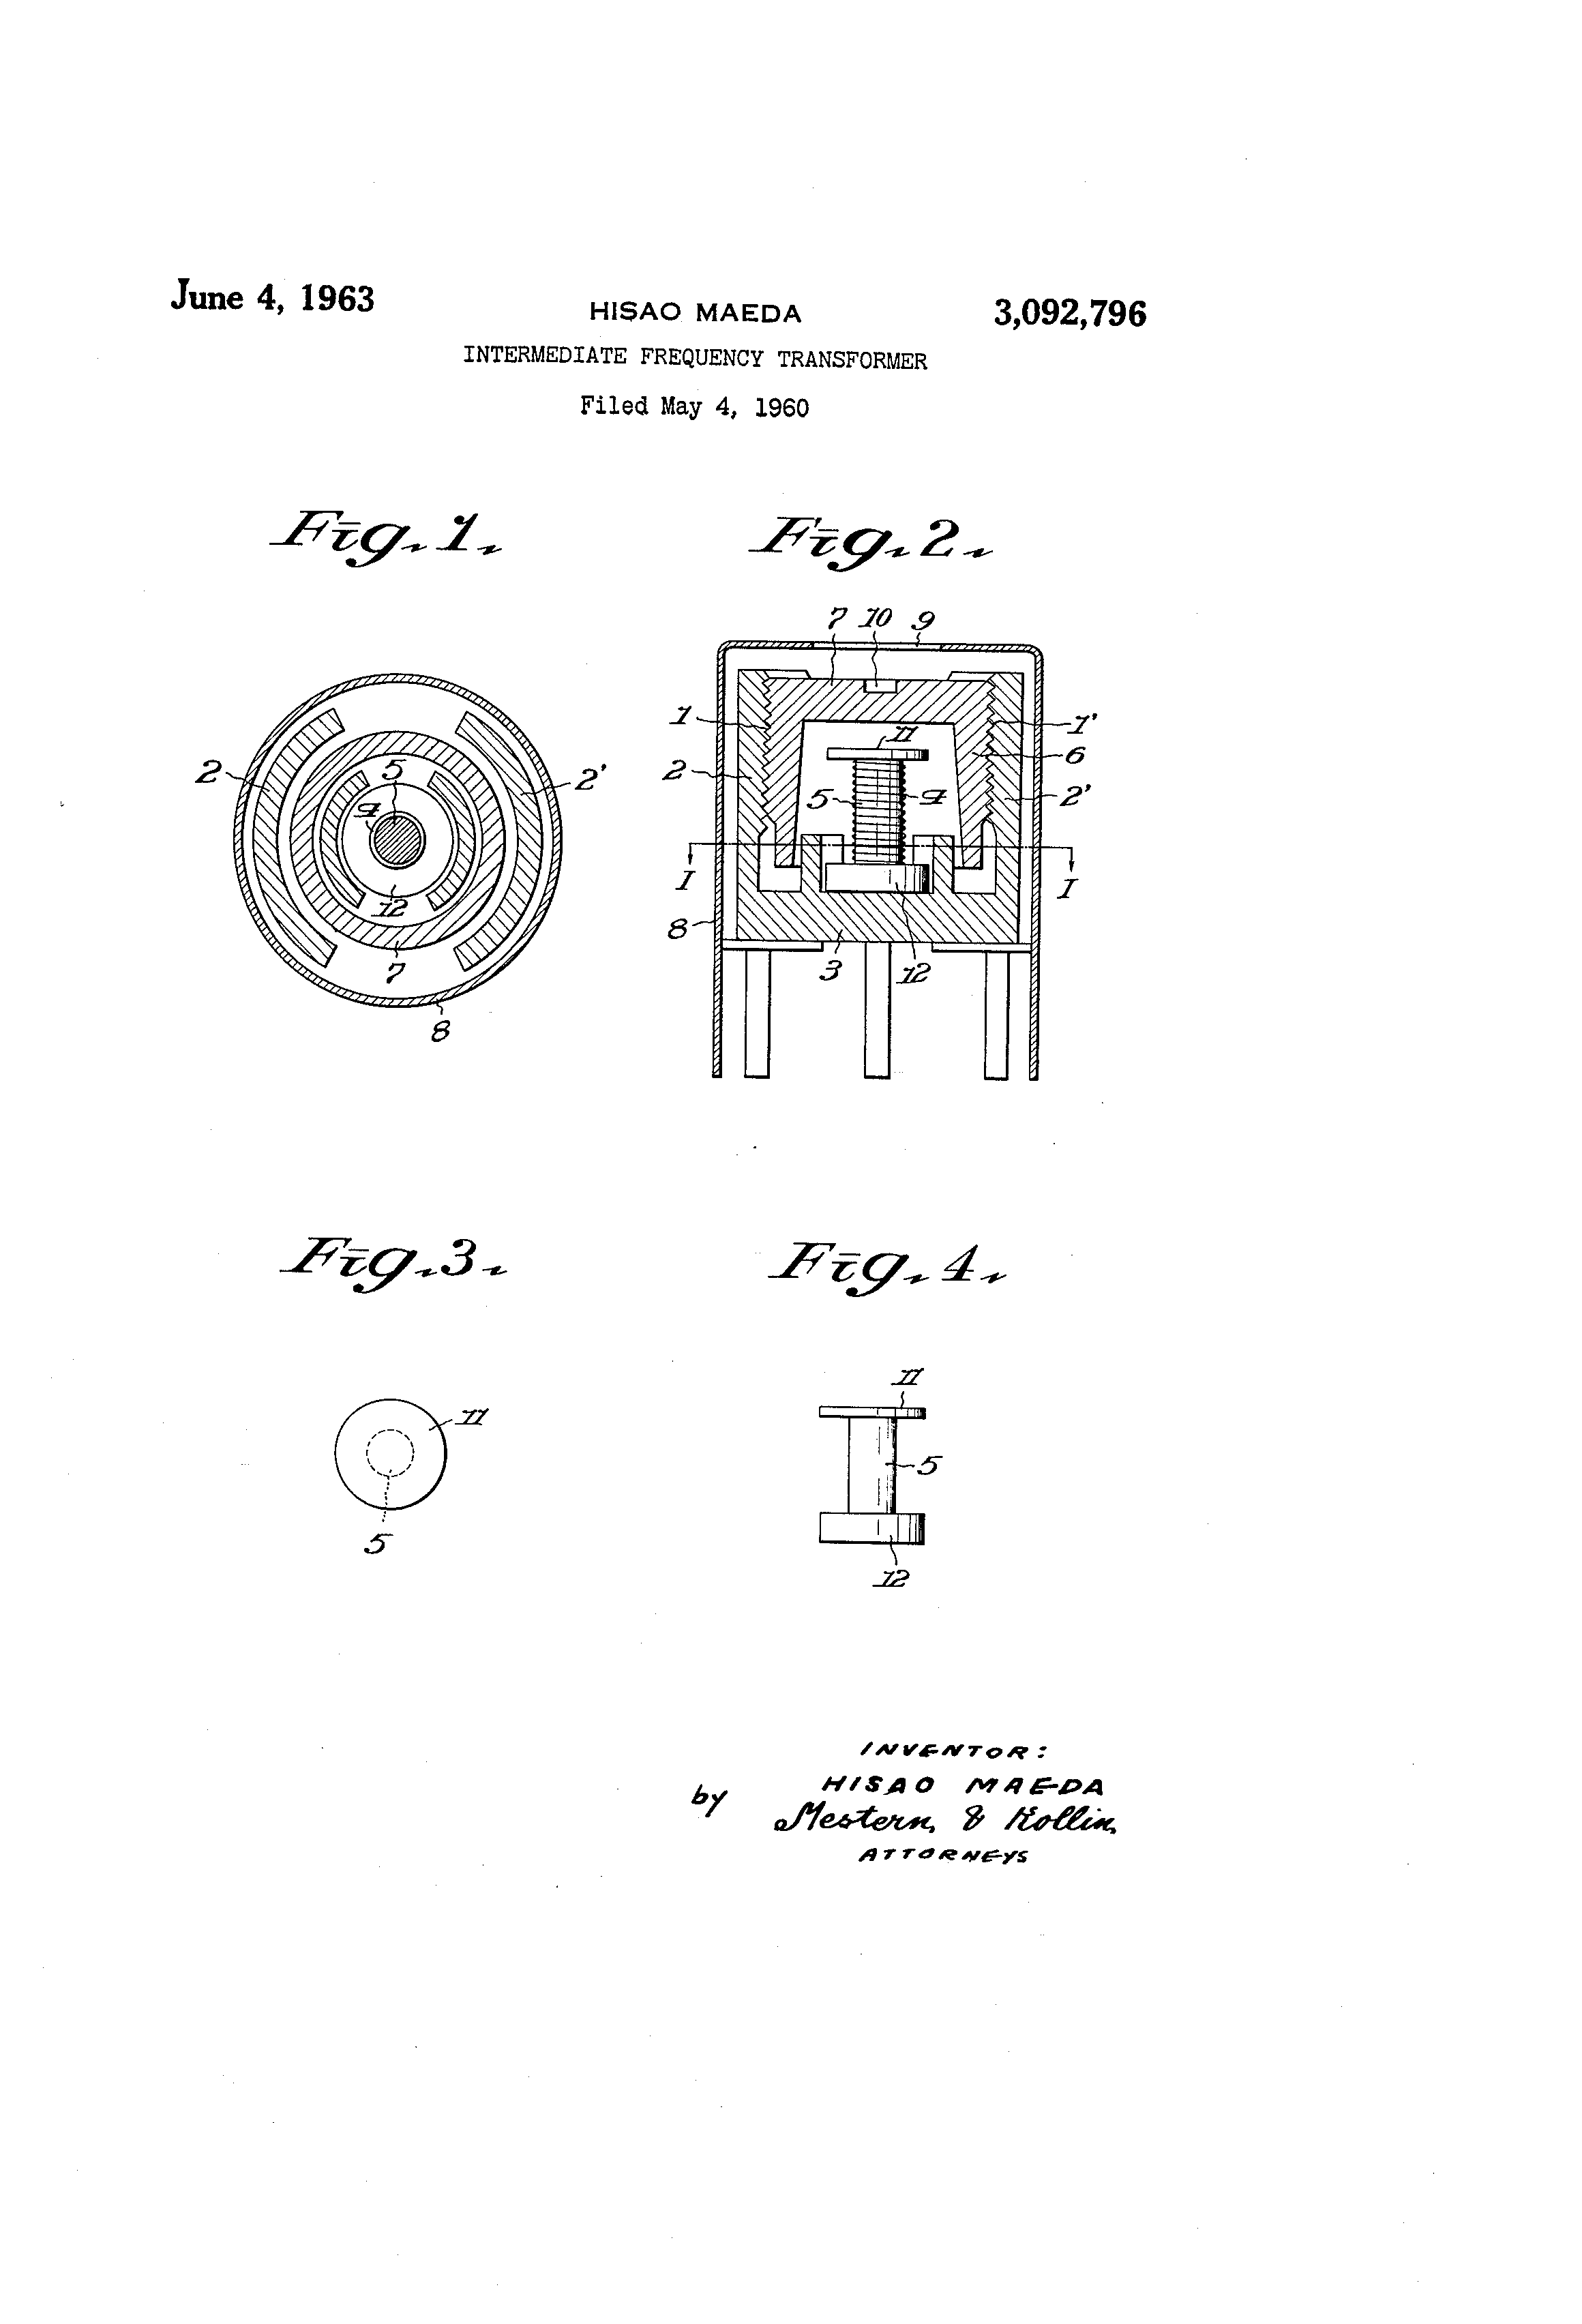 USA - Intermediate frequency transformer - Google Patents